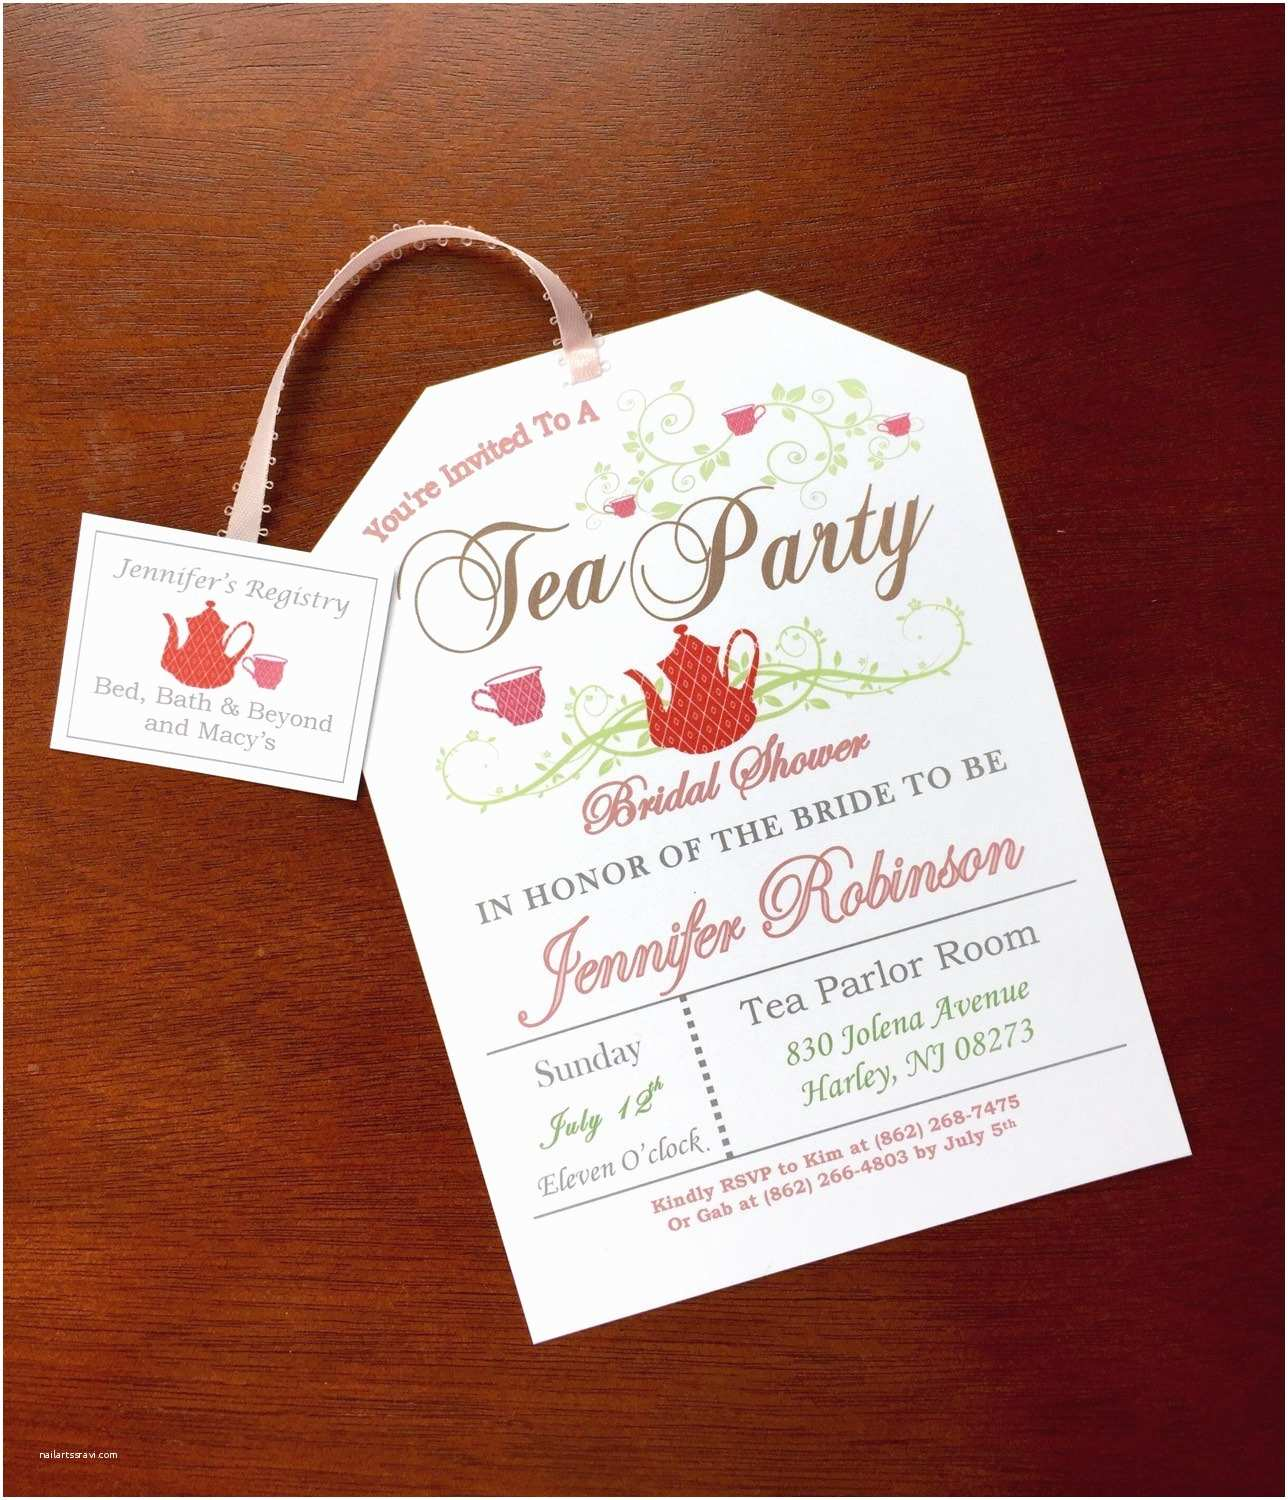 Tea Party Wedding Invitations Tea Party Bridal Shower Invitations